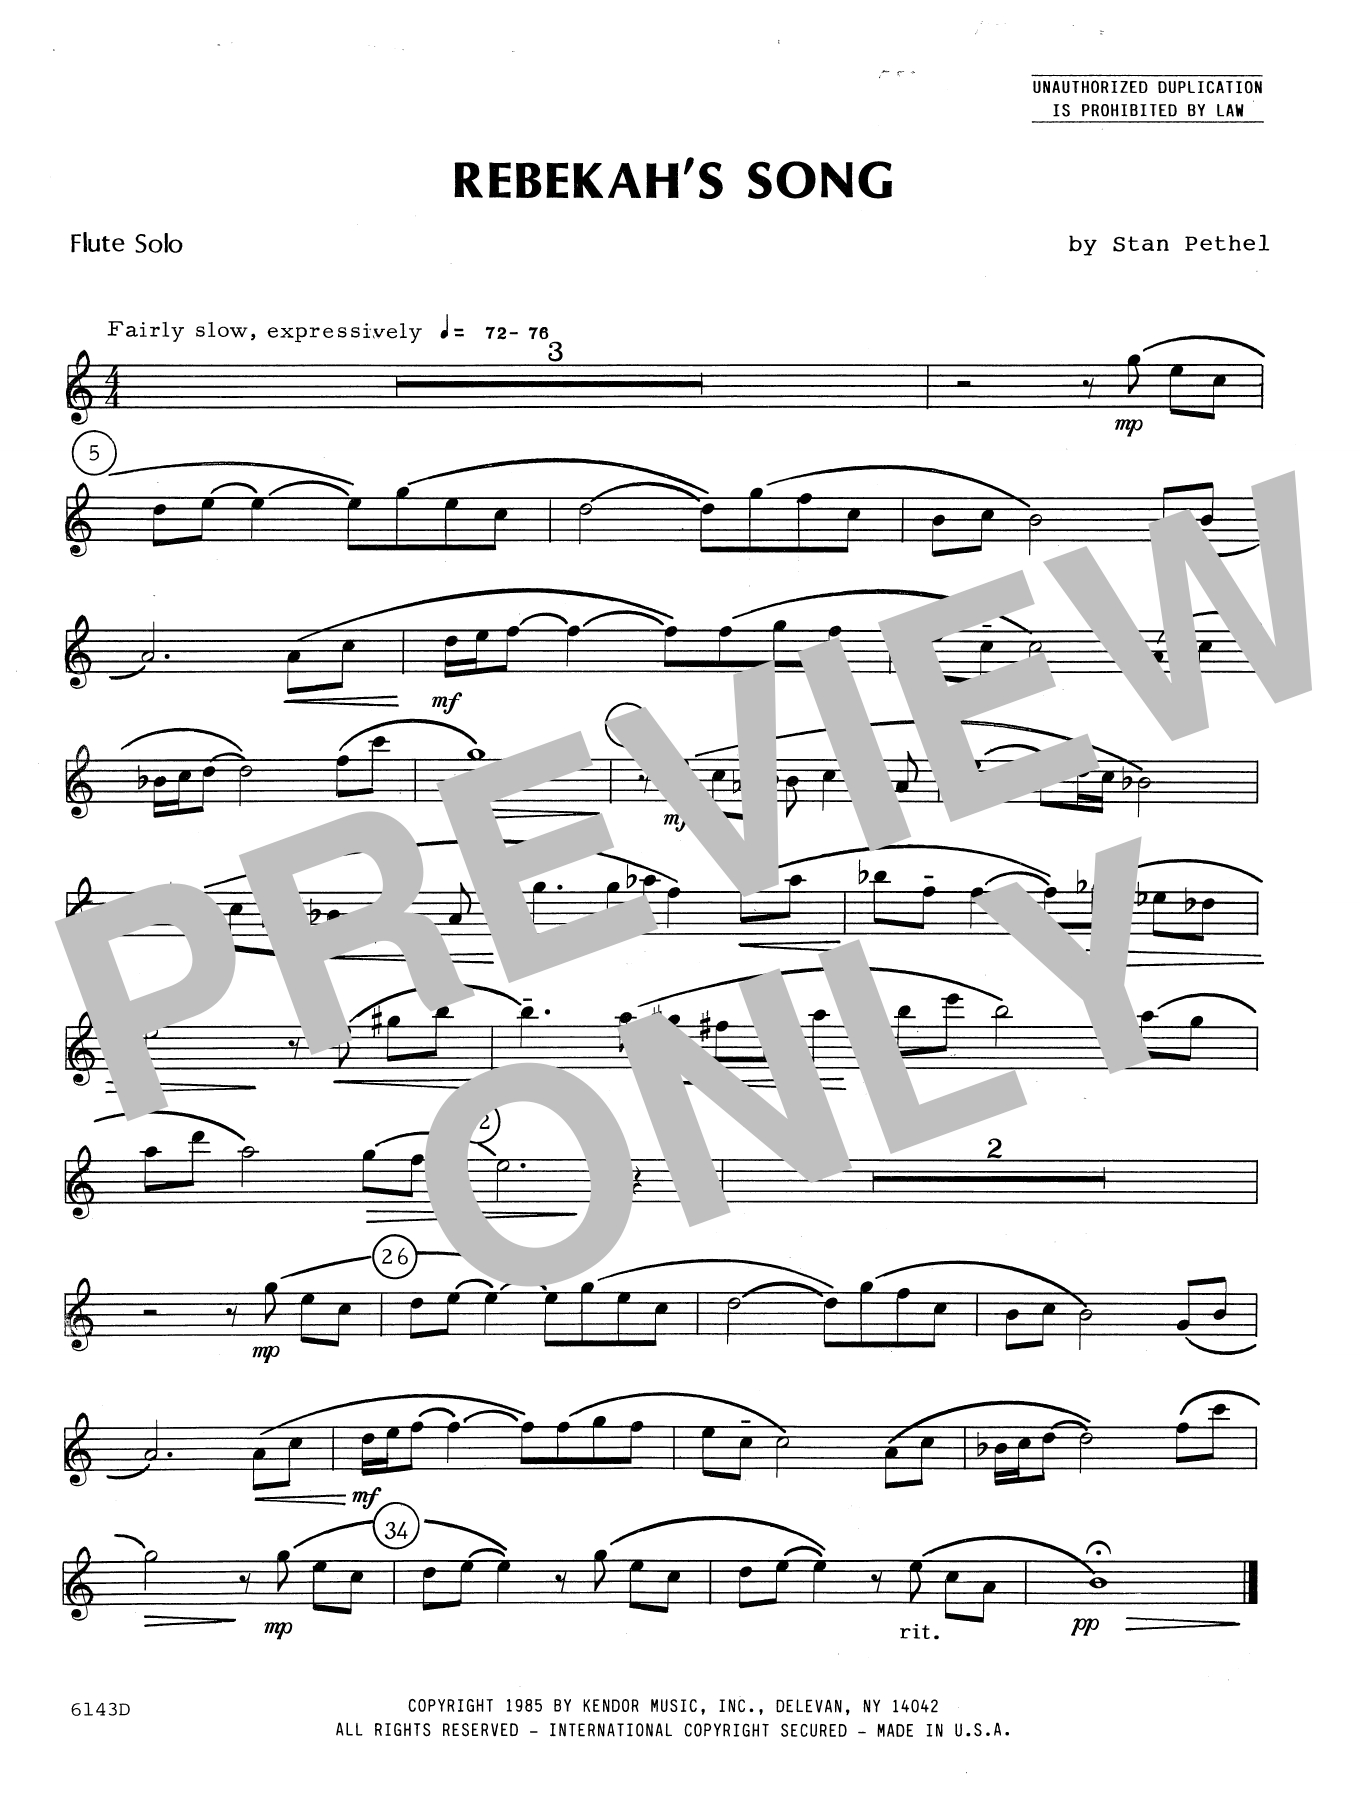 Rebekah's Song (complete set of parts) sheet music for flute and piano by Stan Pethel. Score Image Preview.